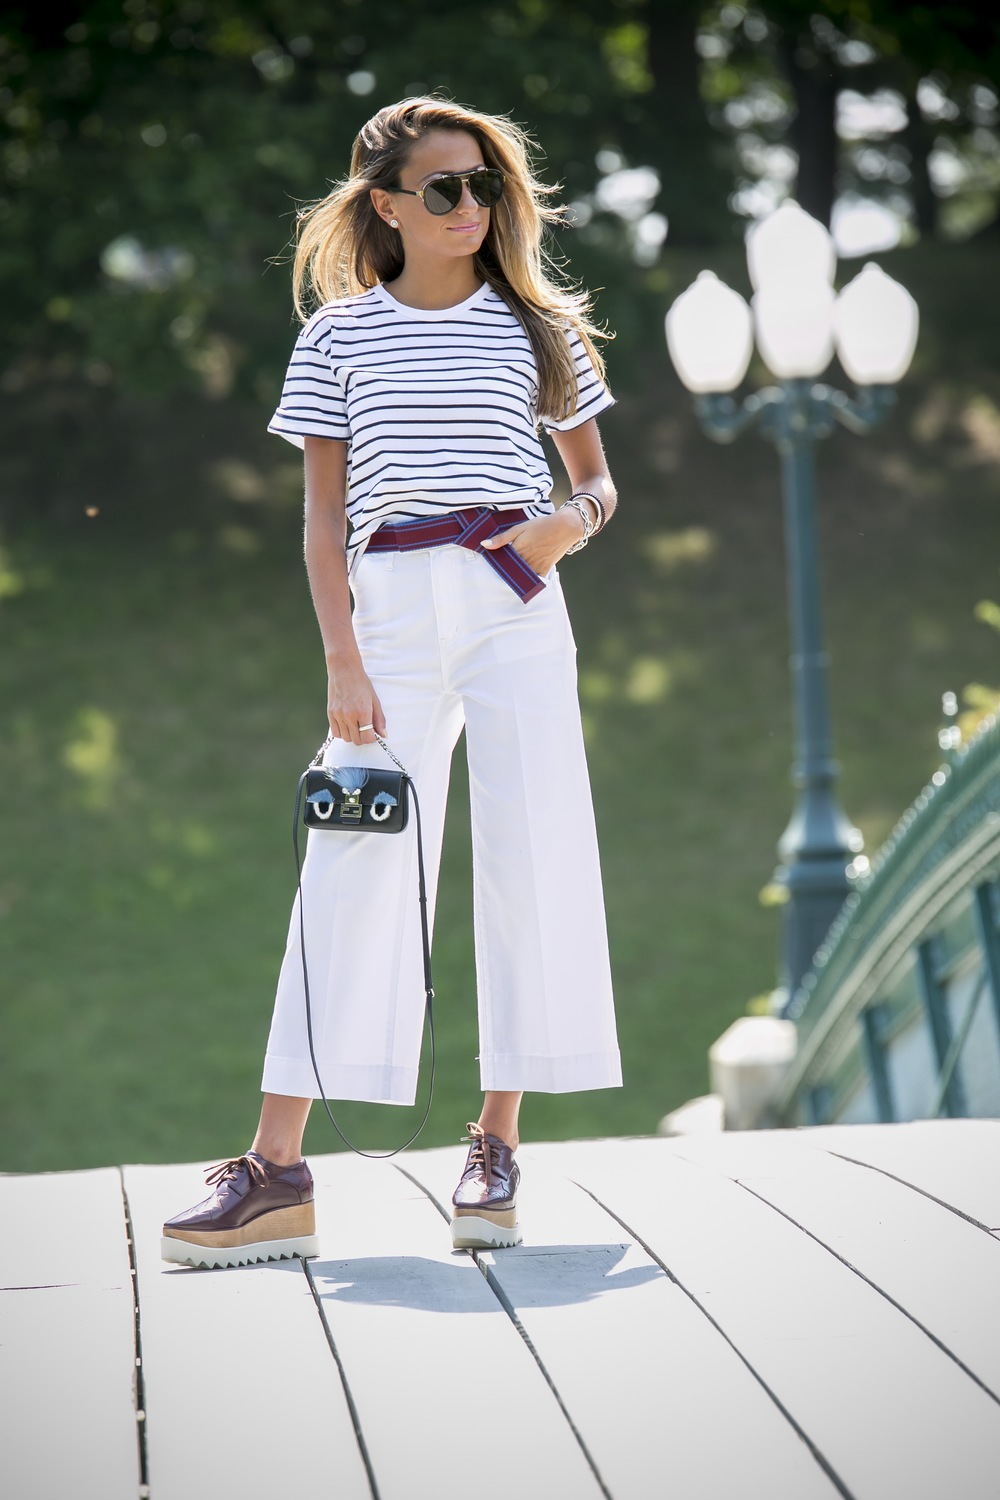 rag and bone stripes, make bow belt, made well denim, stella platforms, and fendi micro-baguette bag